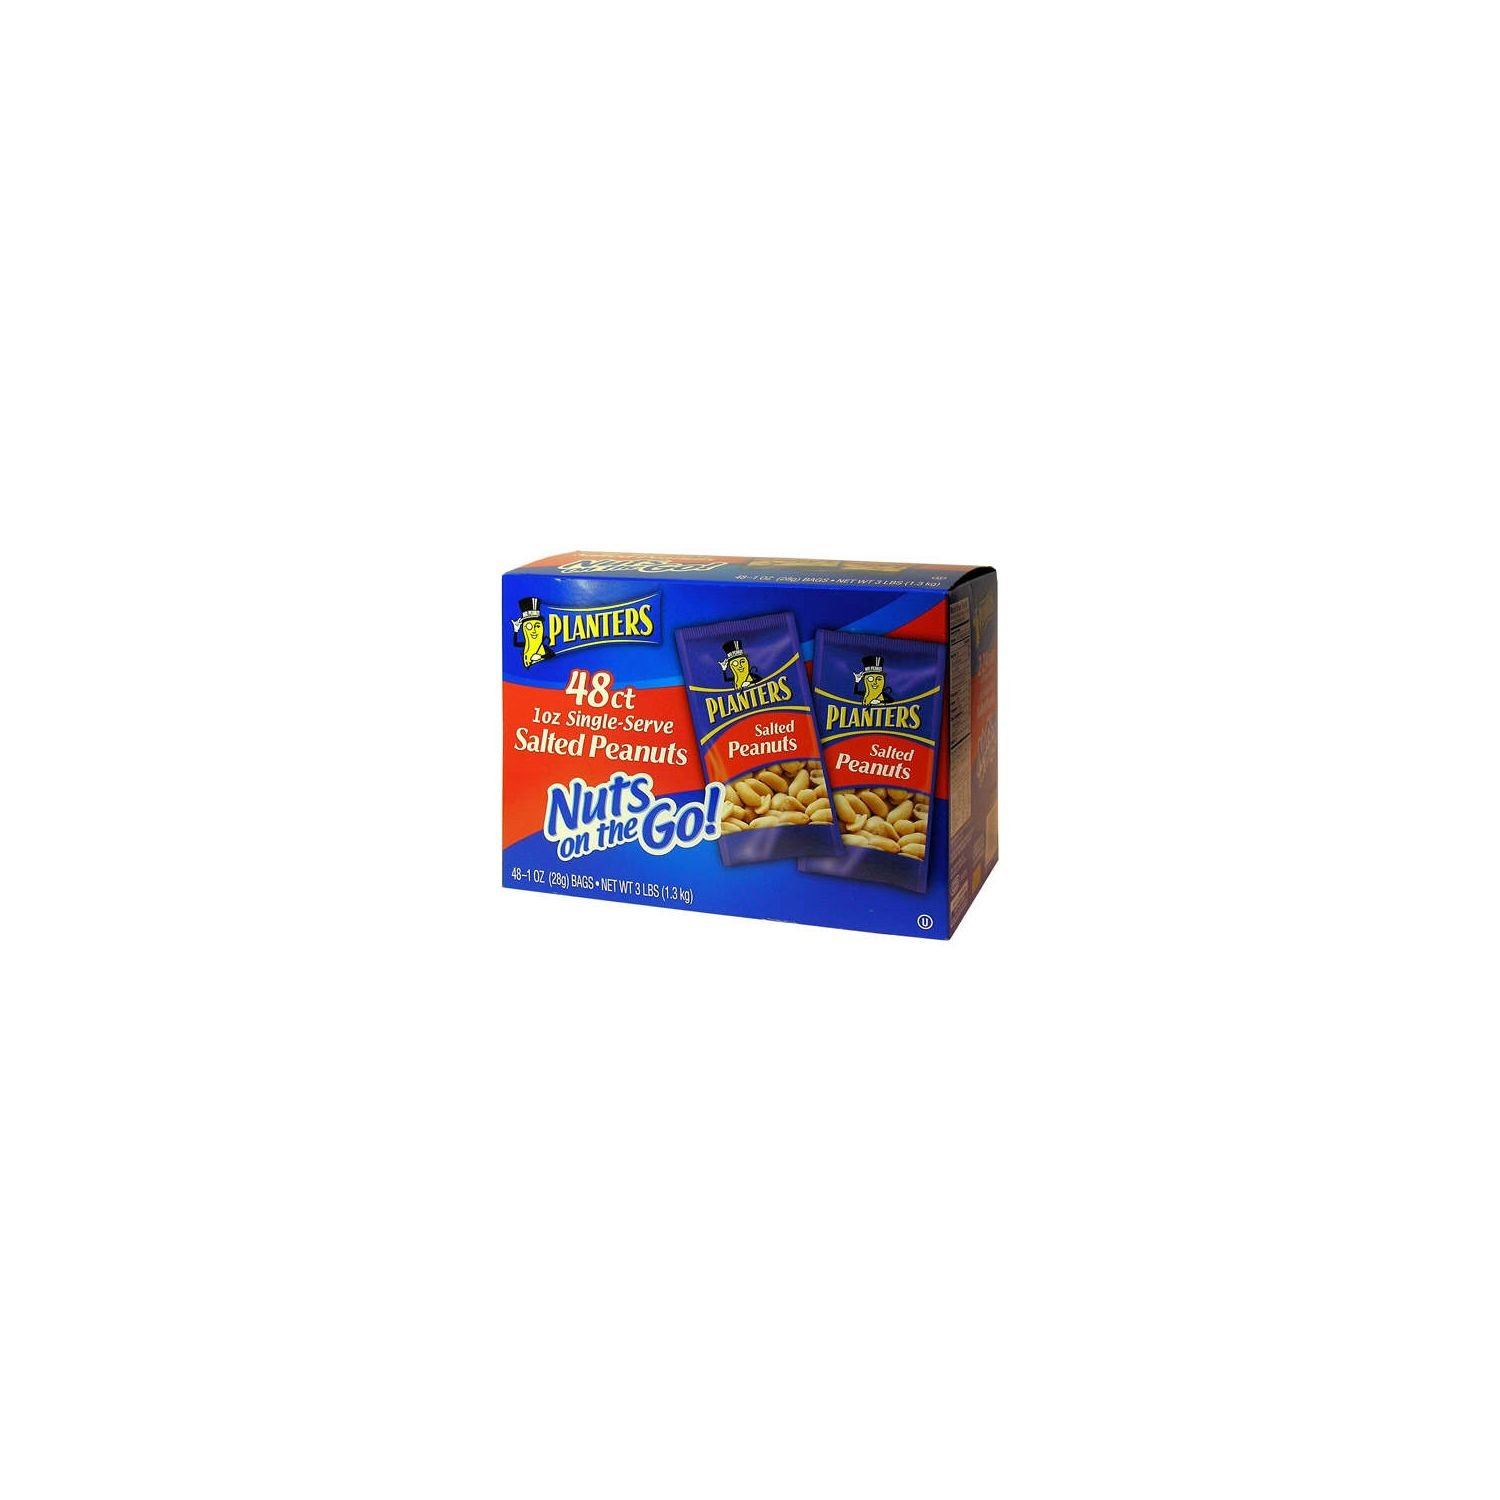 Planters Nuts on the Go Salted Peanuts, 1 oz single-serve bags, 96 Bags Total